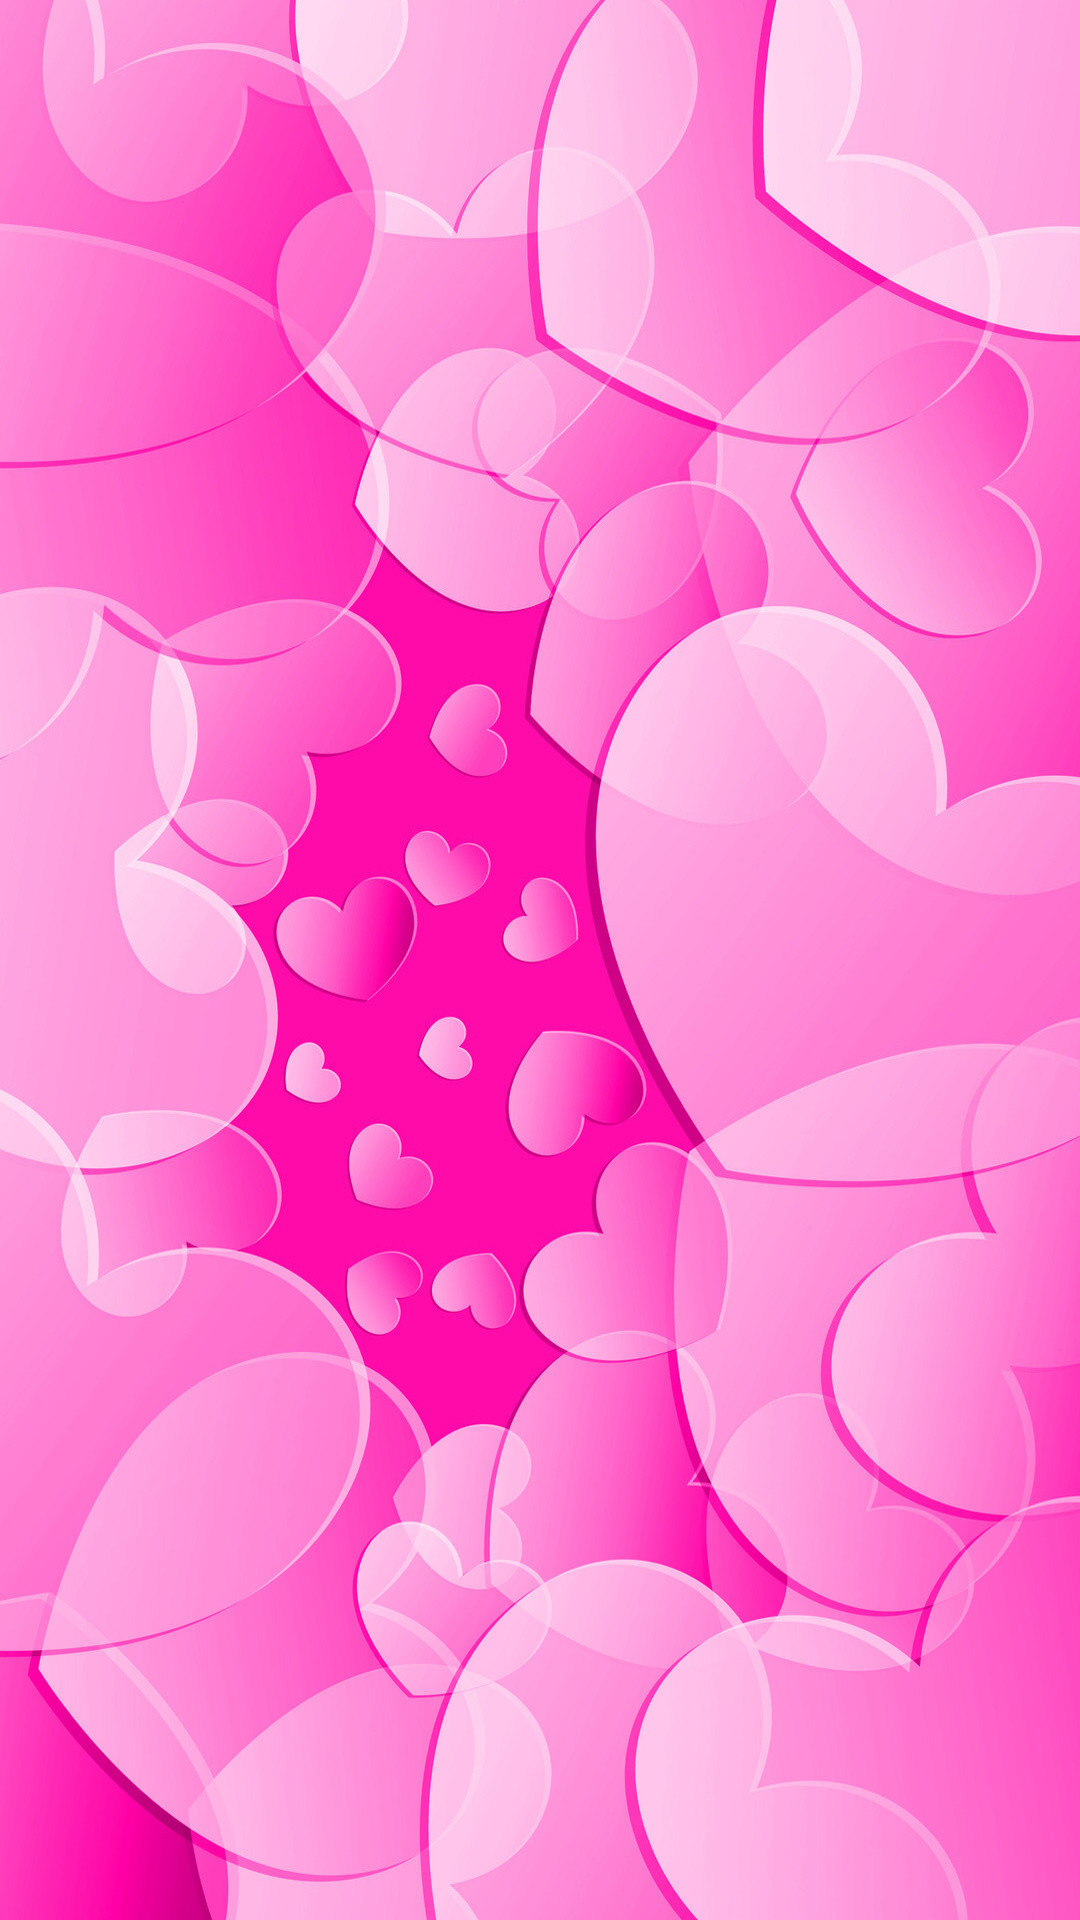 1080x1920 I'm really in a Pink mood this week. I'm Styling Pink Wallpapers for both  Home and Lock Screens today. They are both full of hearts, is love in the  air?